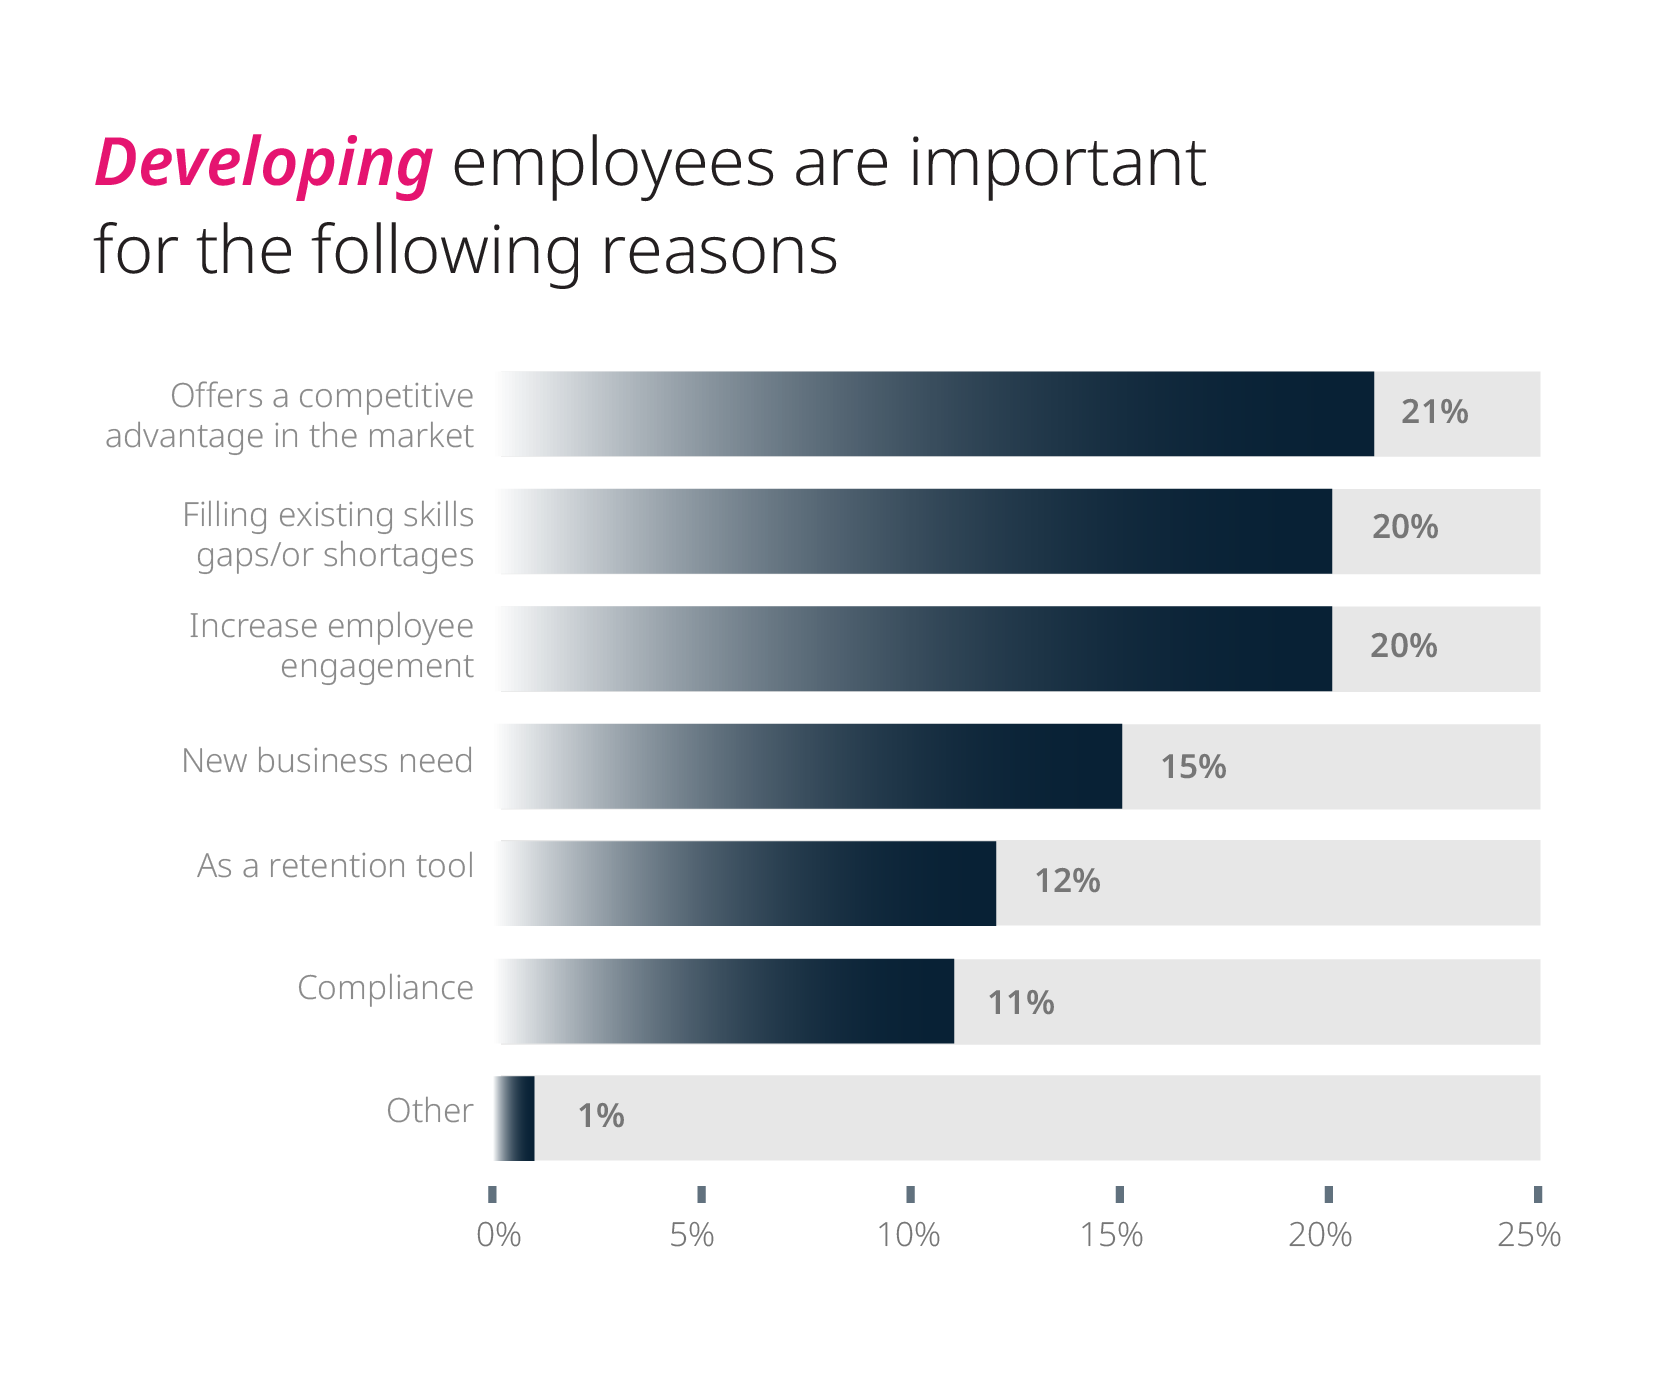 Why it's important for organizations to focus on employee development